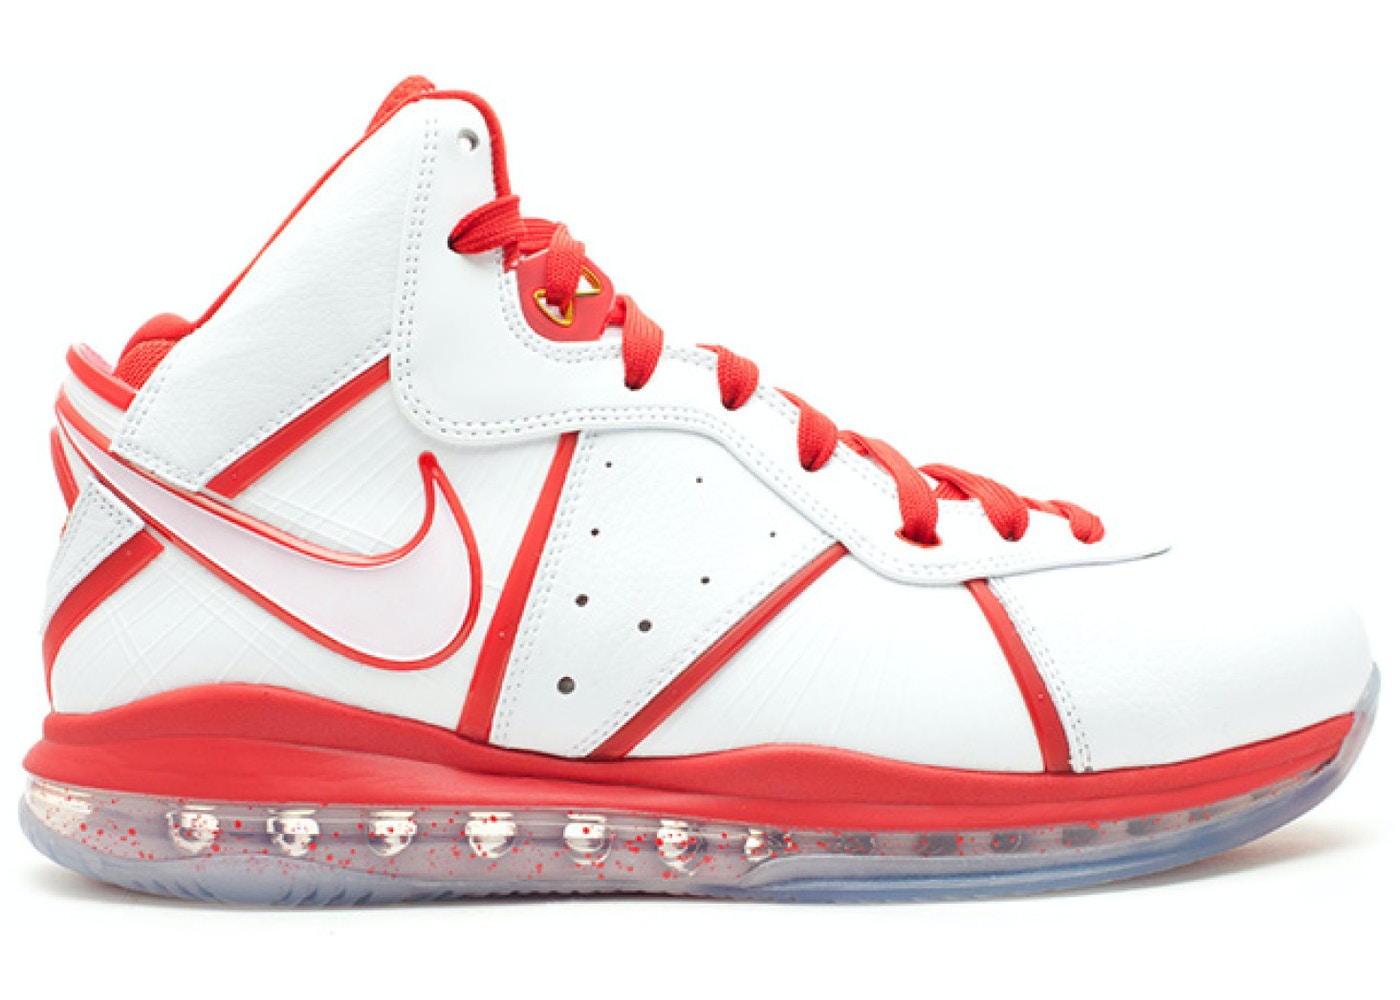 factory price 099c9 c5842 Buy Nike LeBron 8 Shoes   Deadstock Sneakers